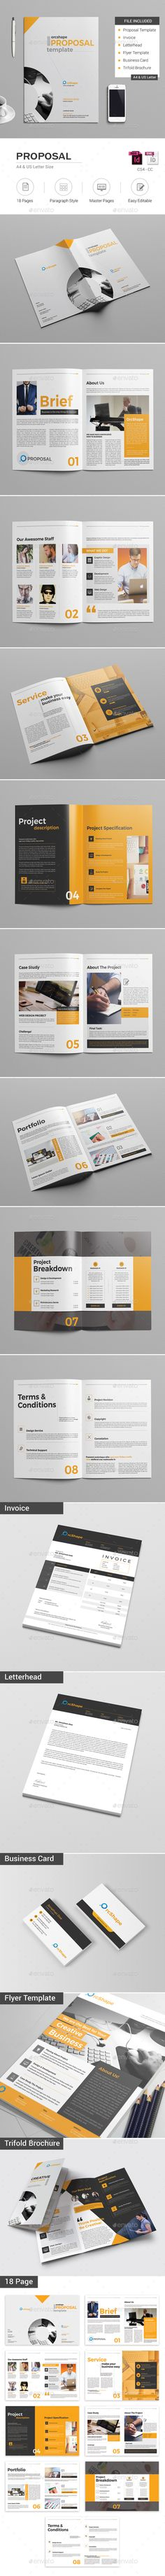 Web Design Proposal  Proposals Proposal Templates And Project